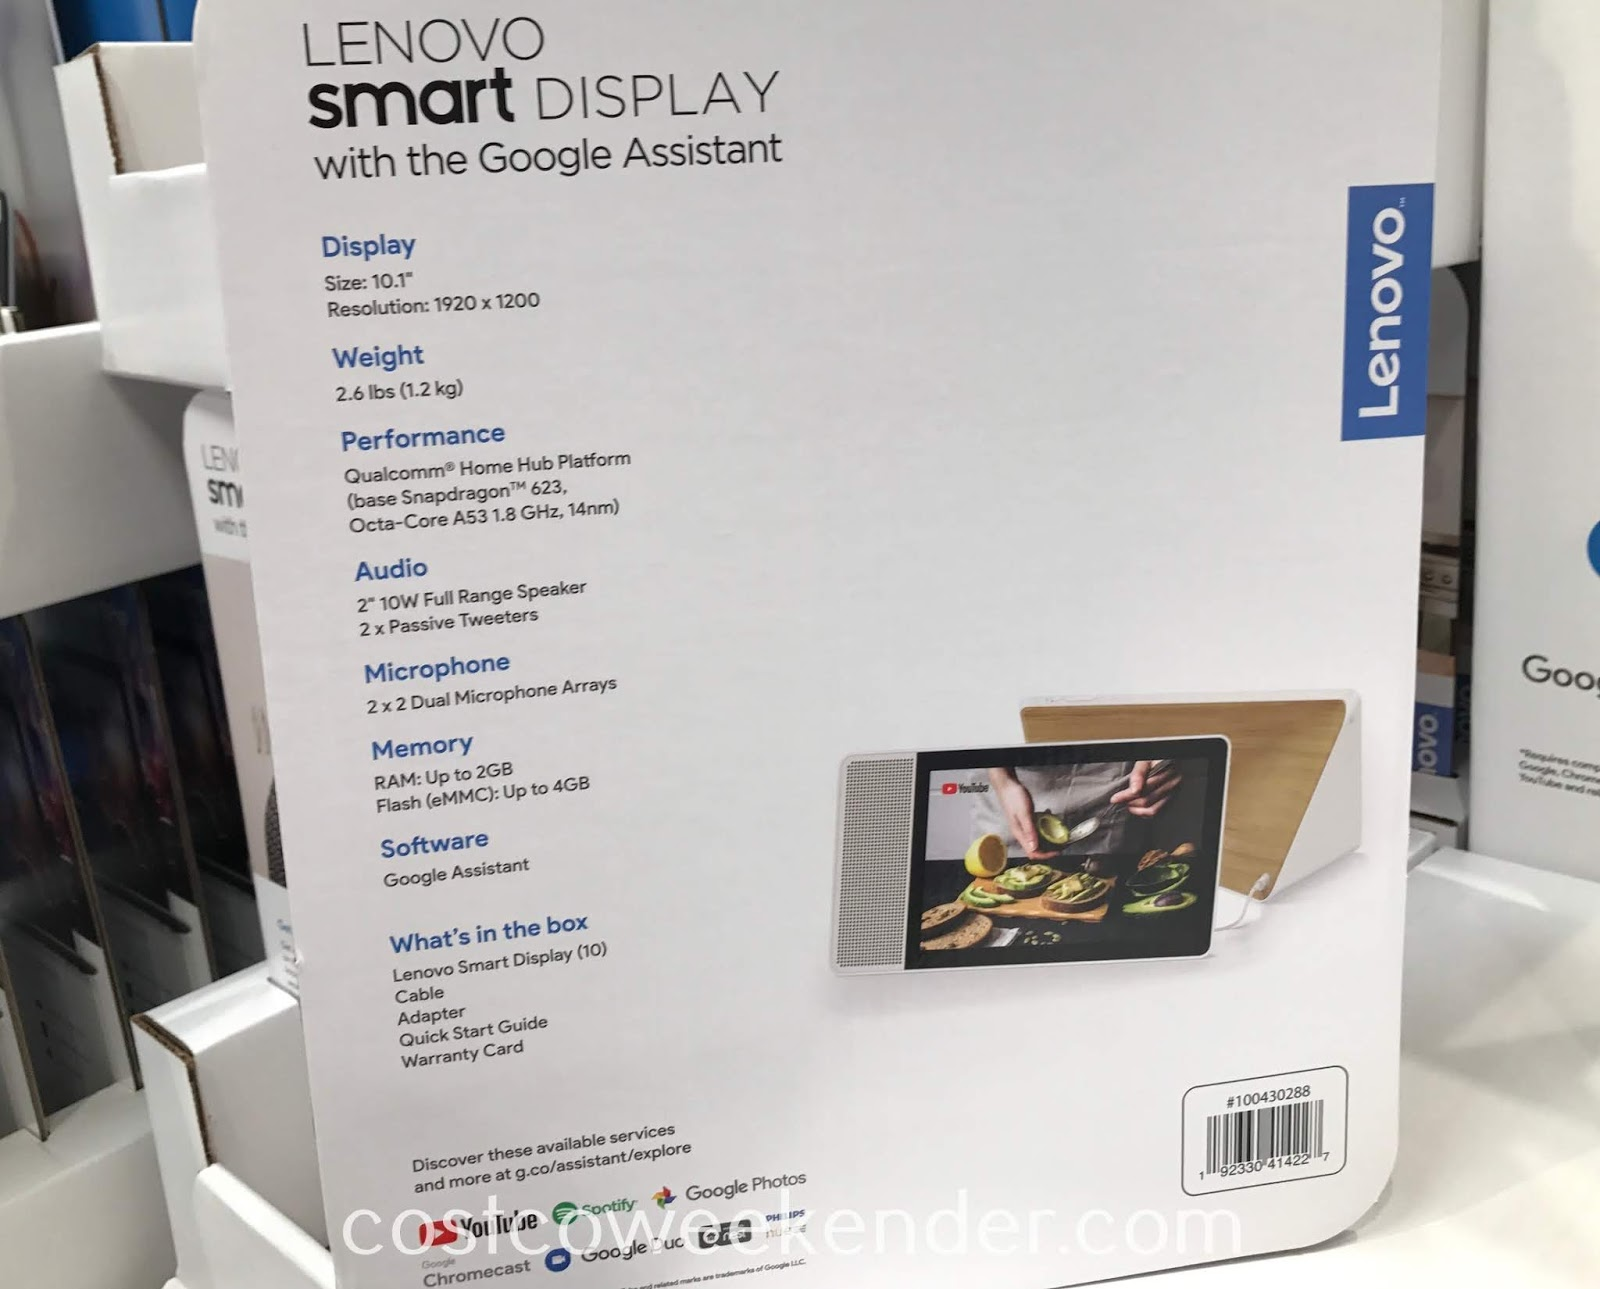 Lenovo Smart Display with the Google Assistant: great for any home